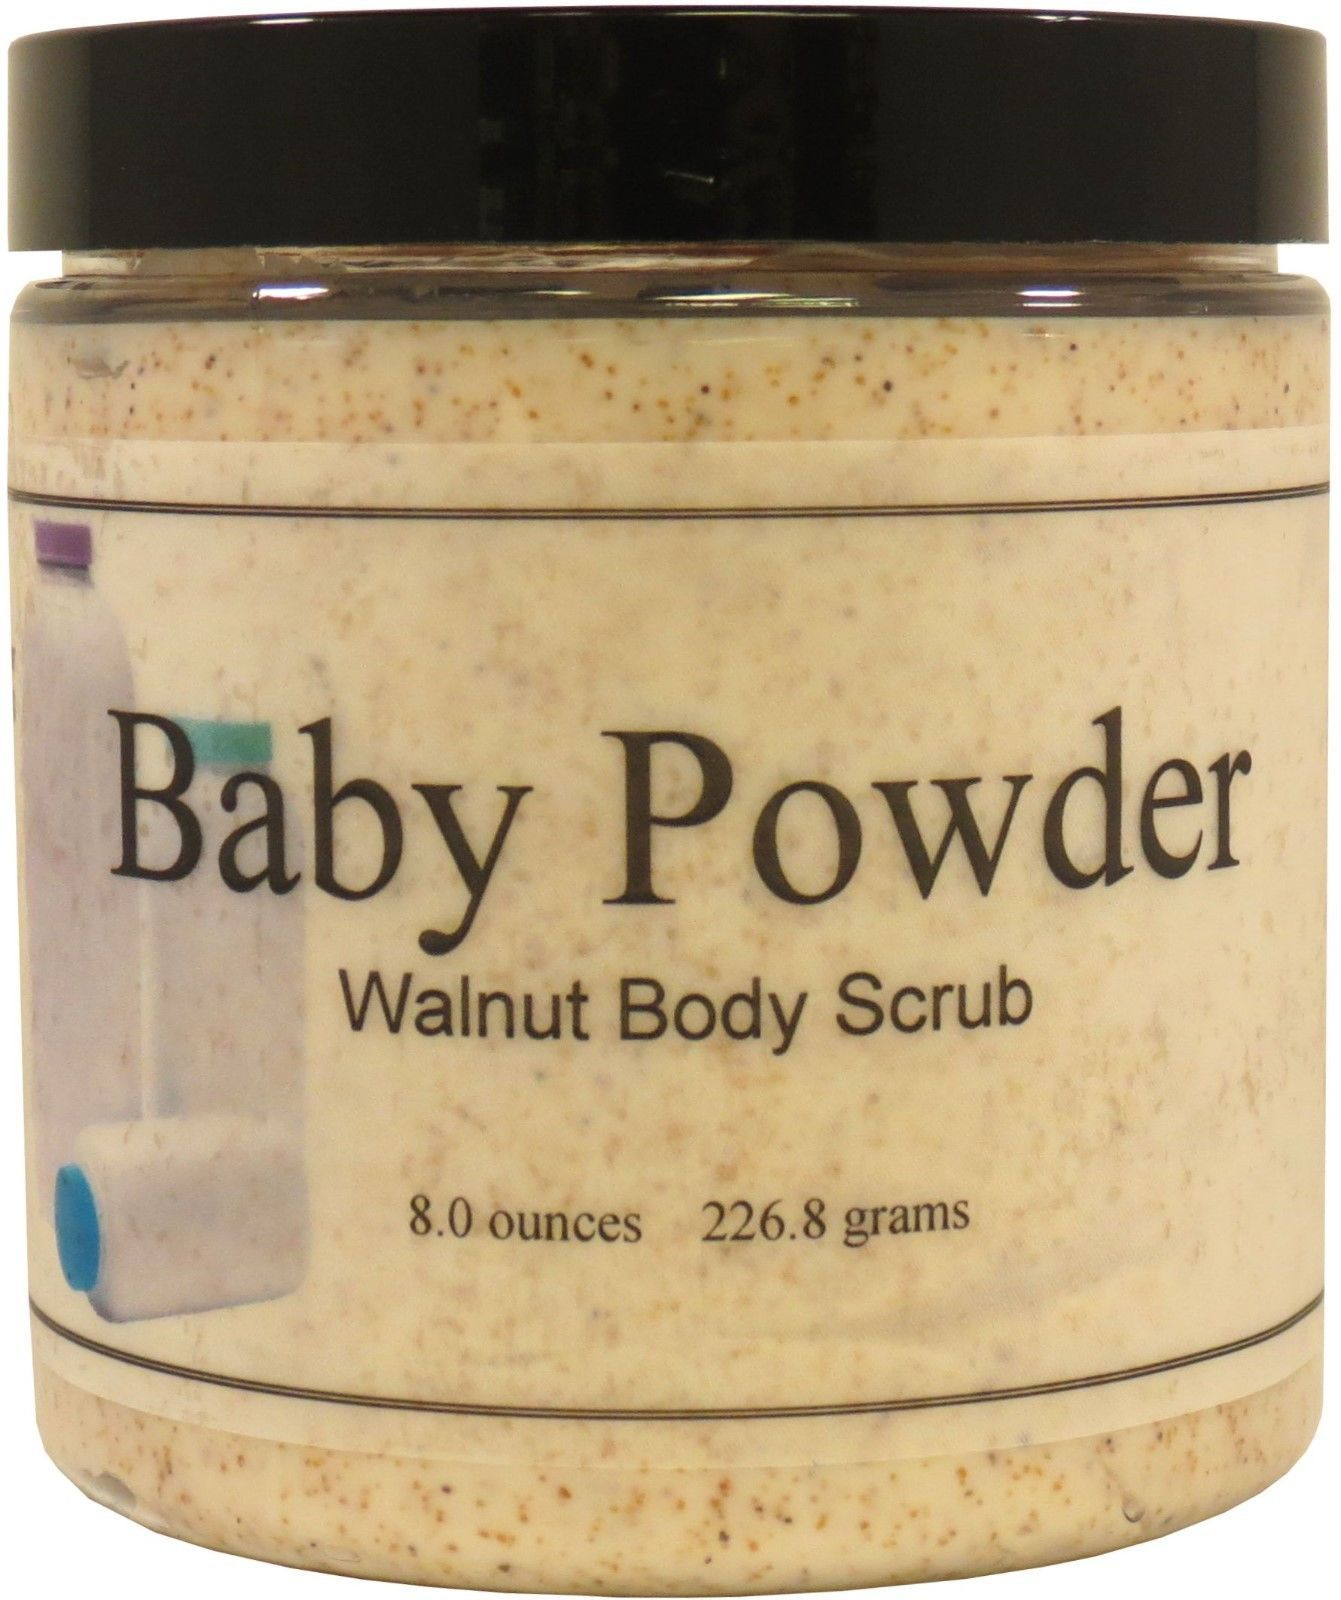 Baby Powder Walnut Body Scrub